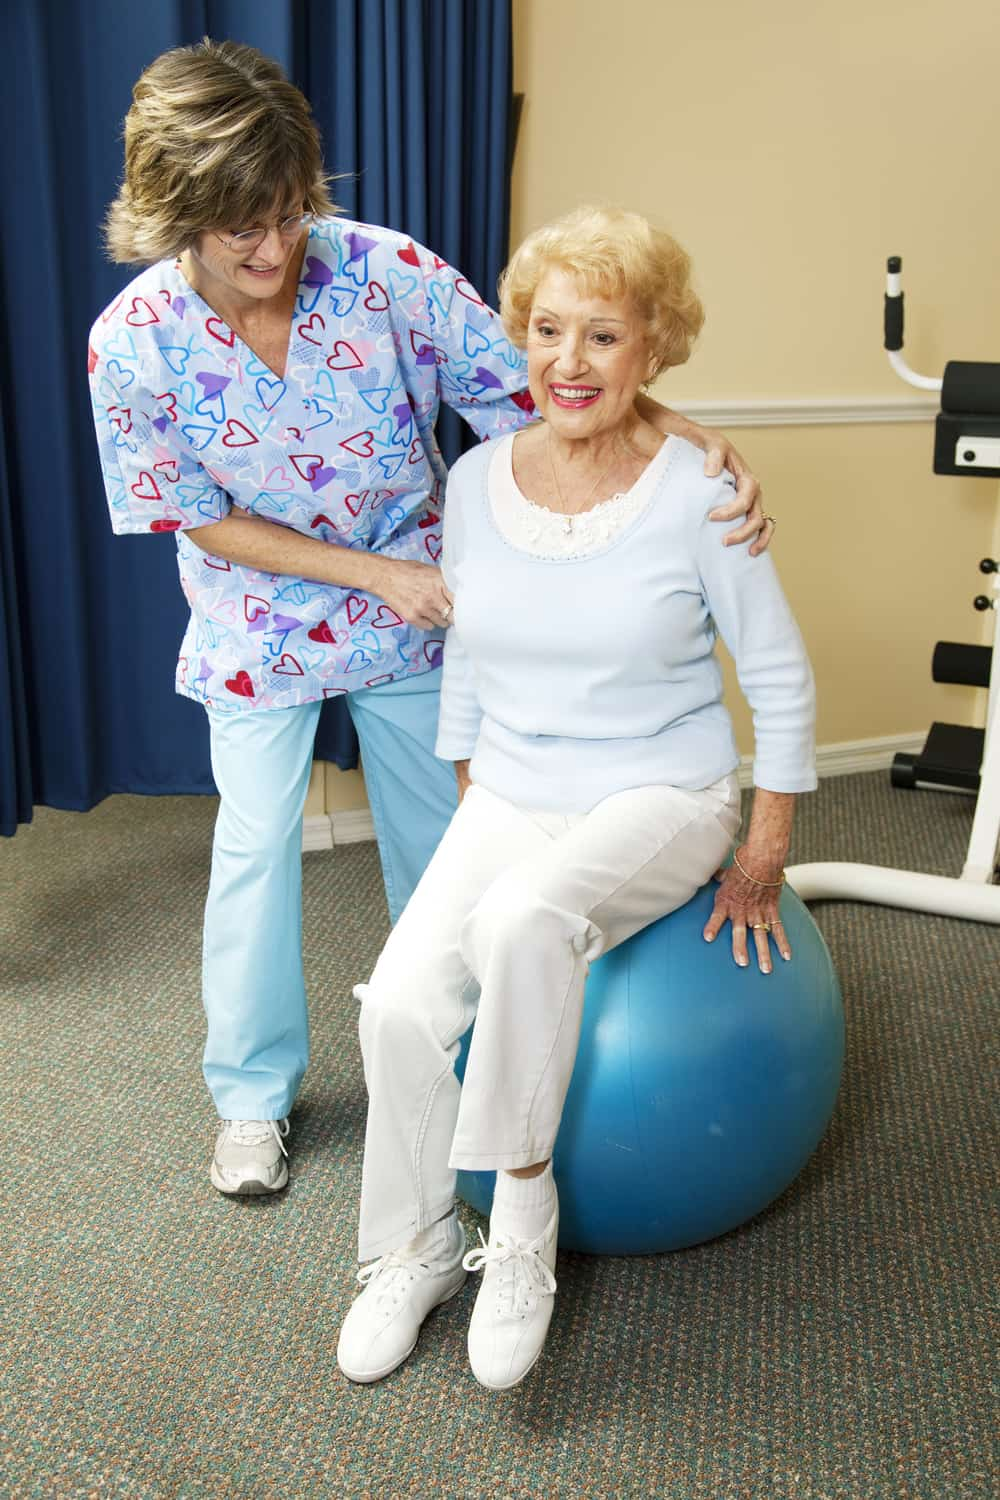 Nurse helping elderly woman doing physical therapy exercise using gym ball